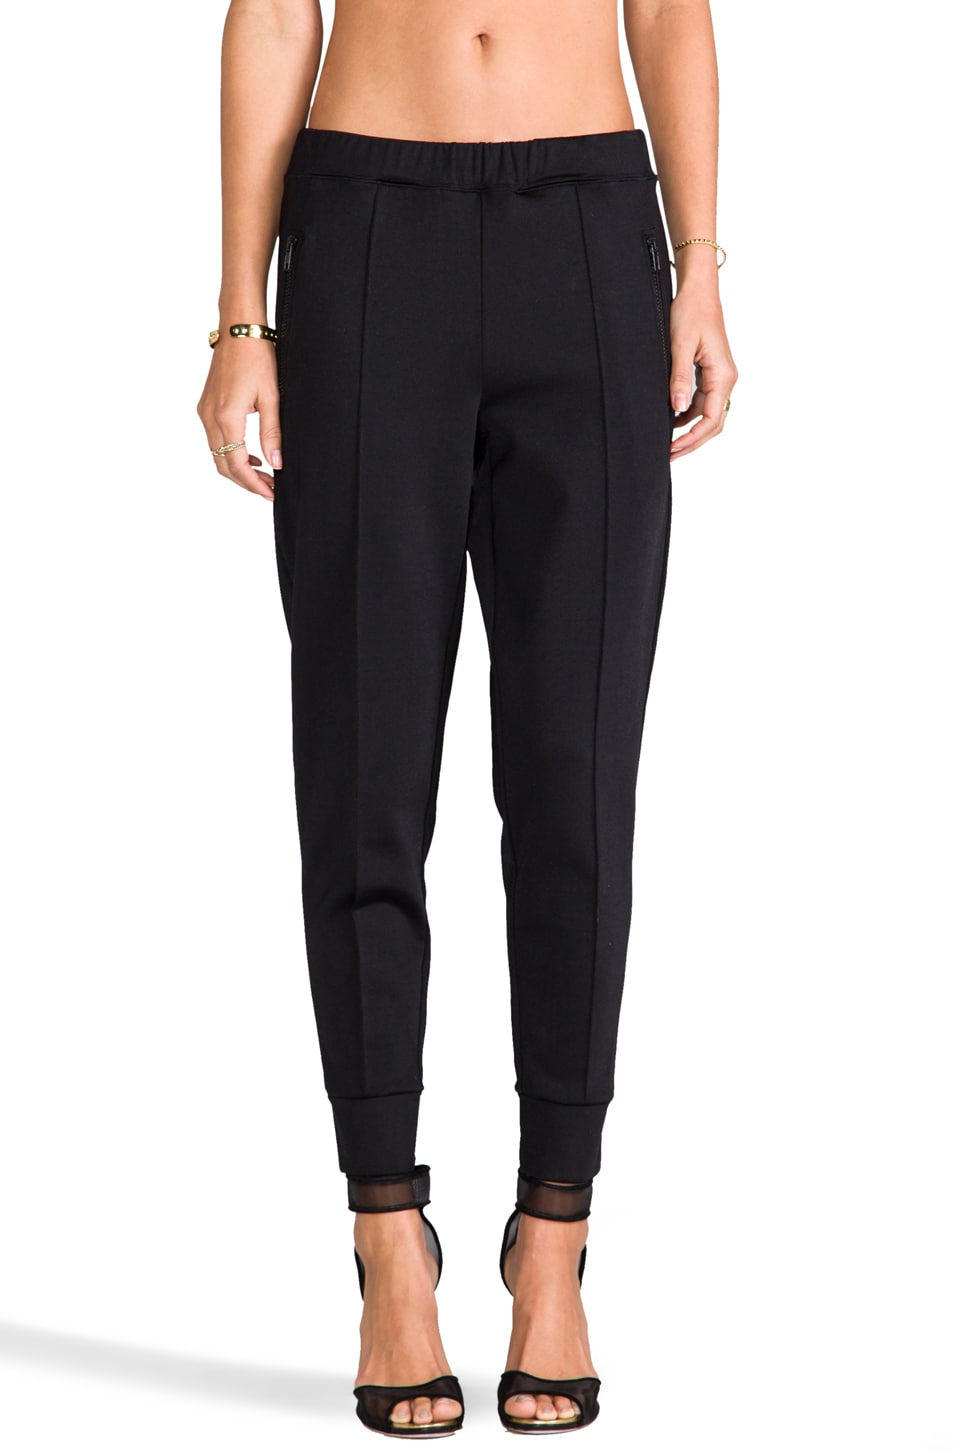 etre cecile Track Pant in Black